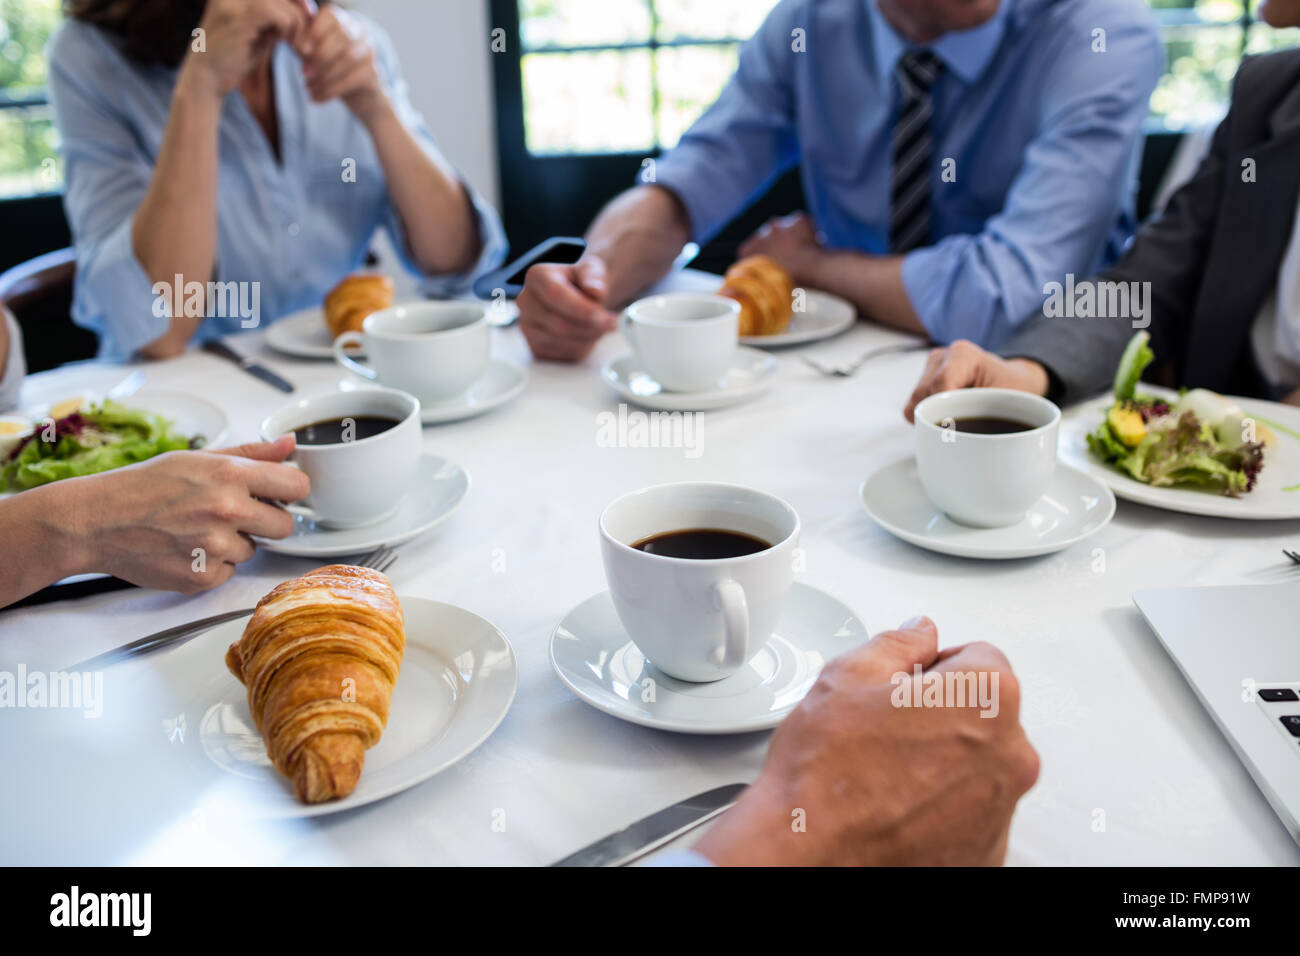 Business people having a meeting in restaurant - Stock Image